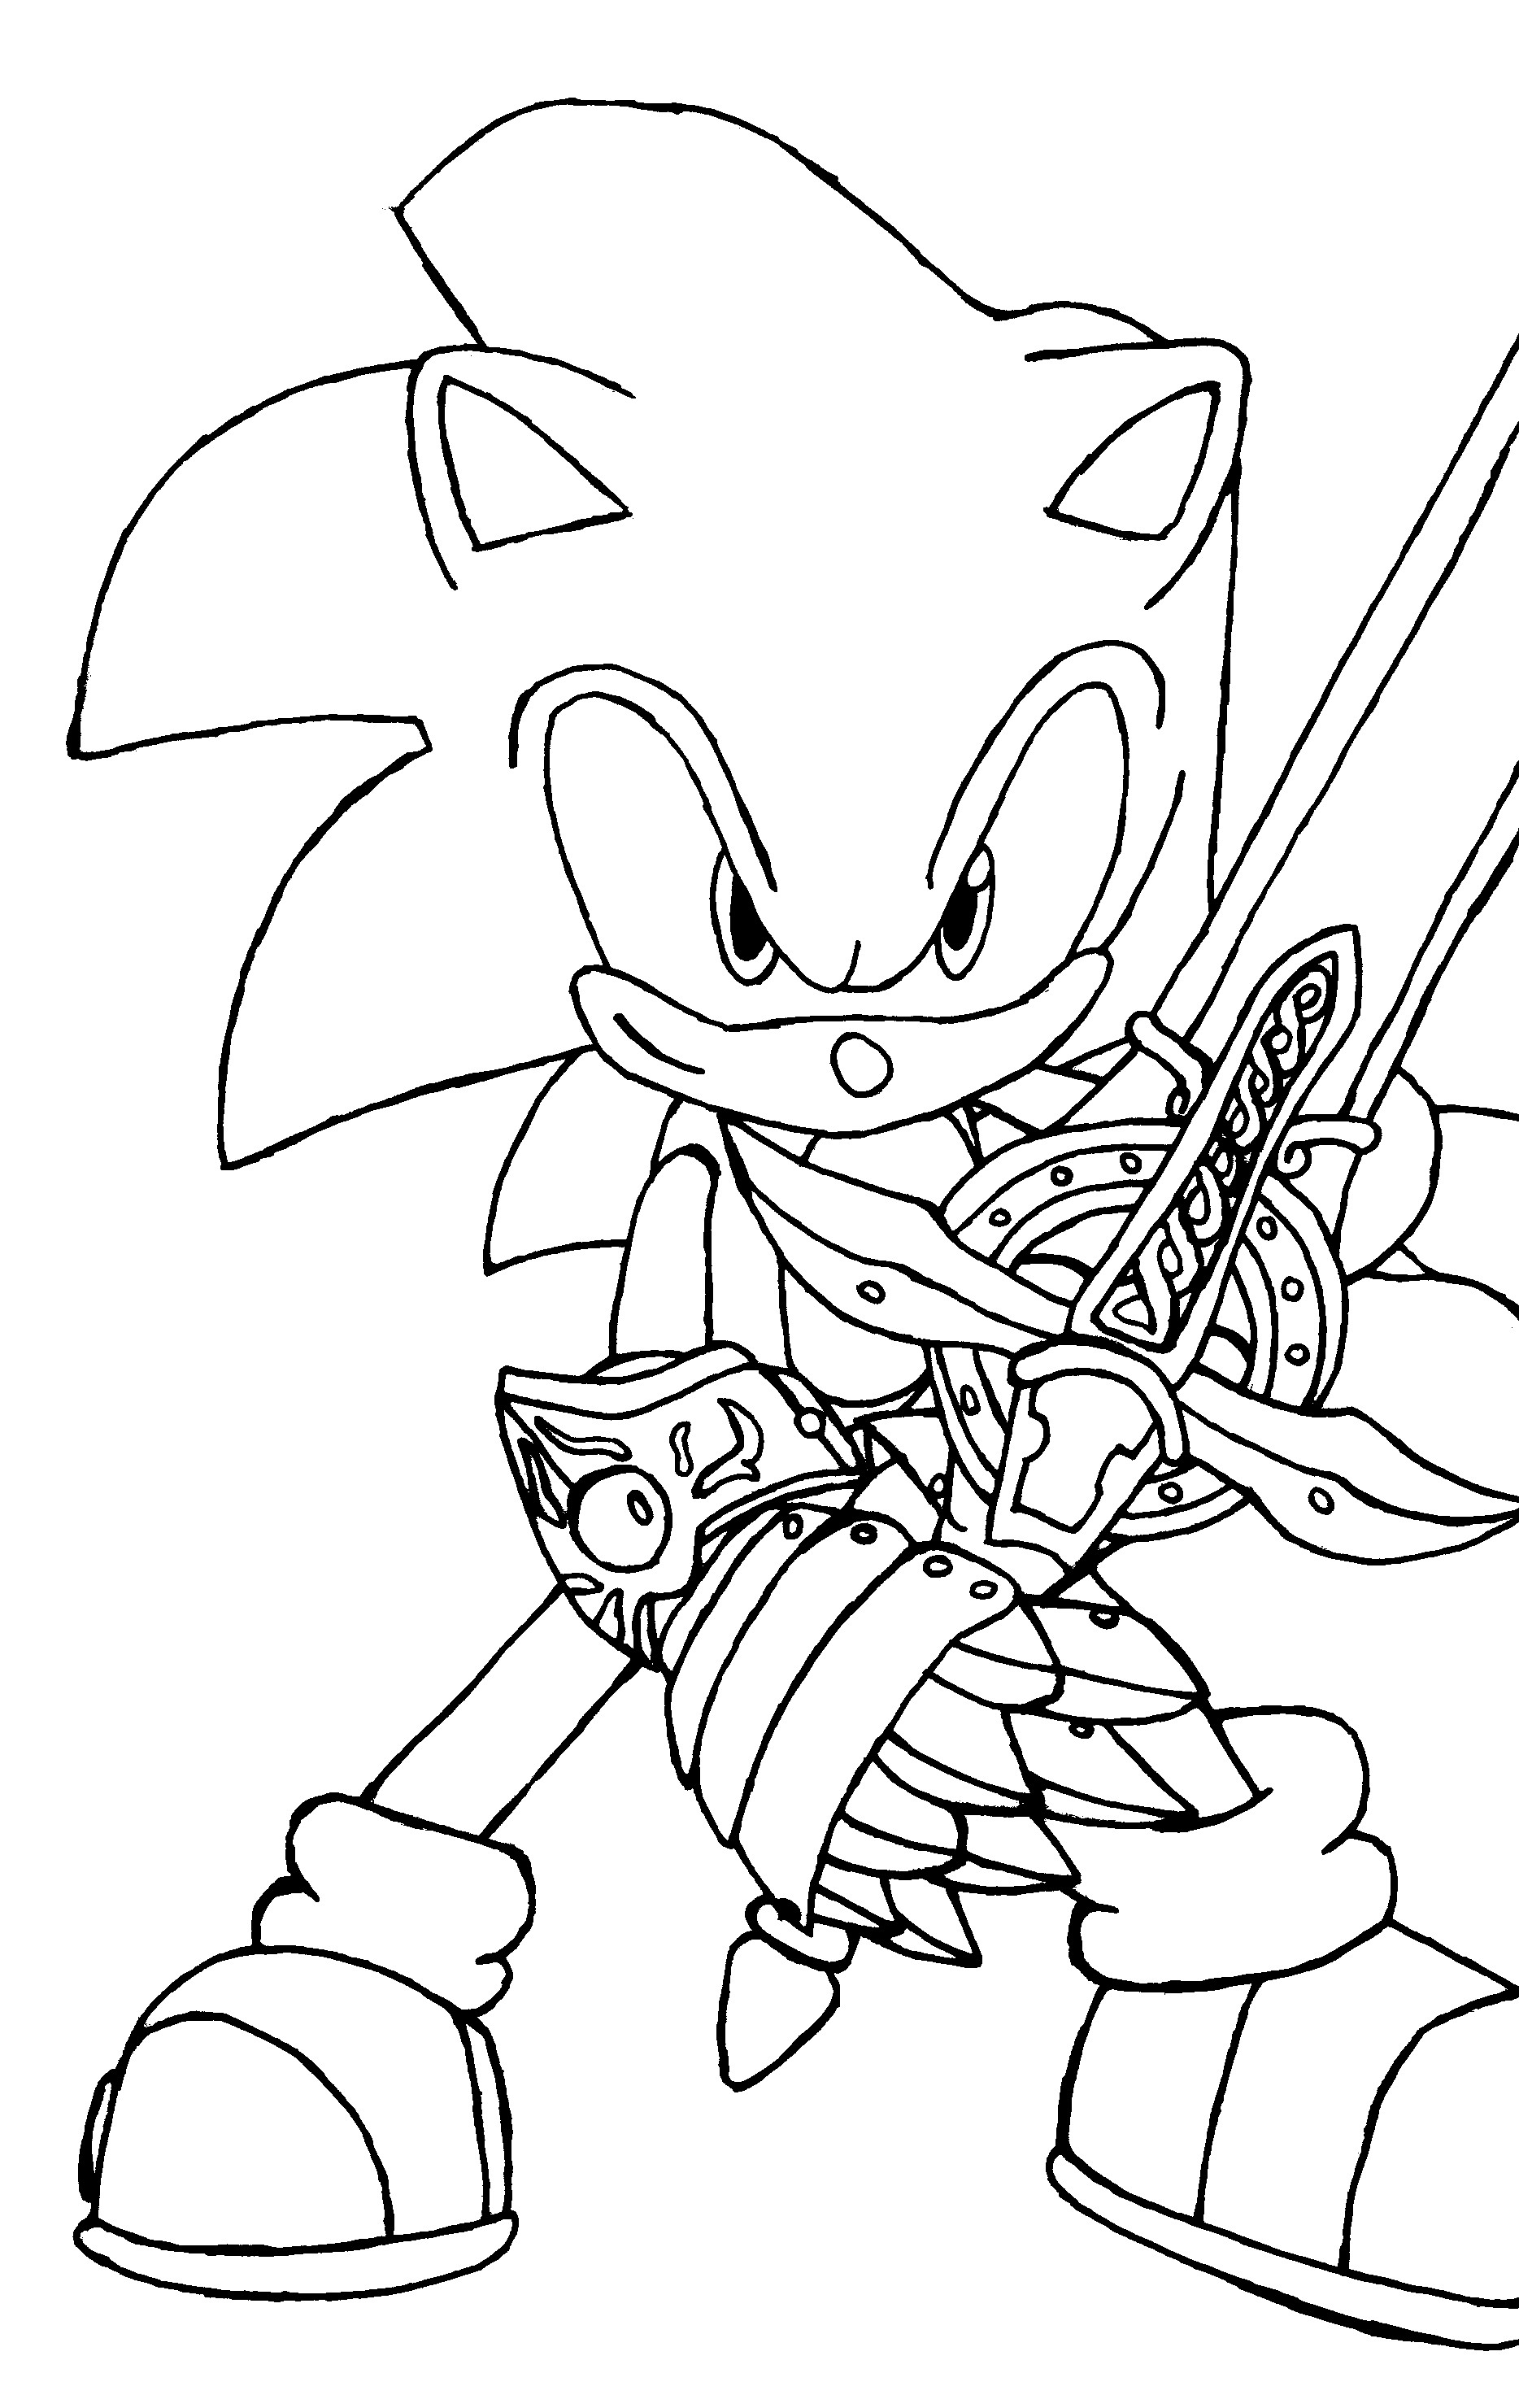 Print Pictures Of Sonic Sonic The Hedgehog Coloring Pages Free Printable Download Coloring Hedgehog Colors Unicorn Coloring Pages Animal Coloring Pages